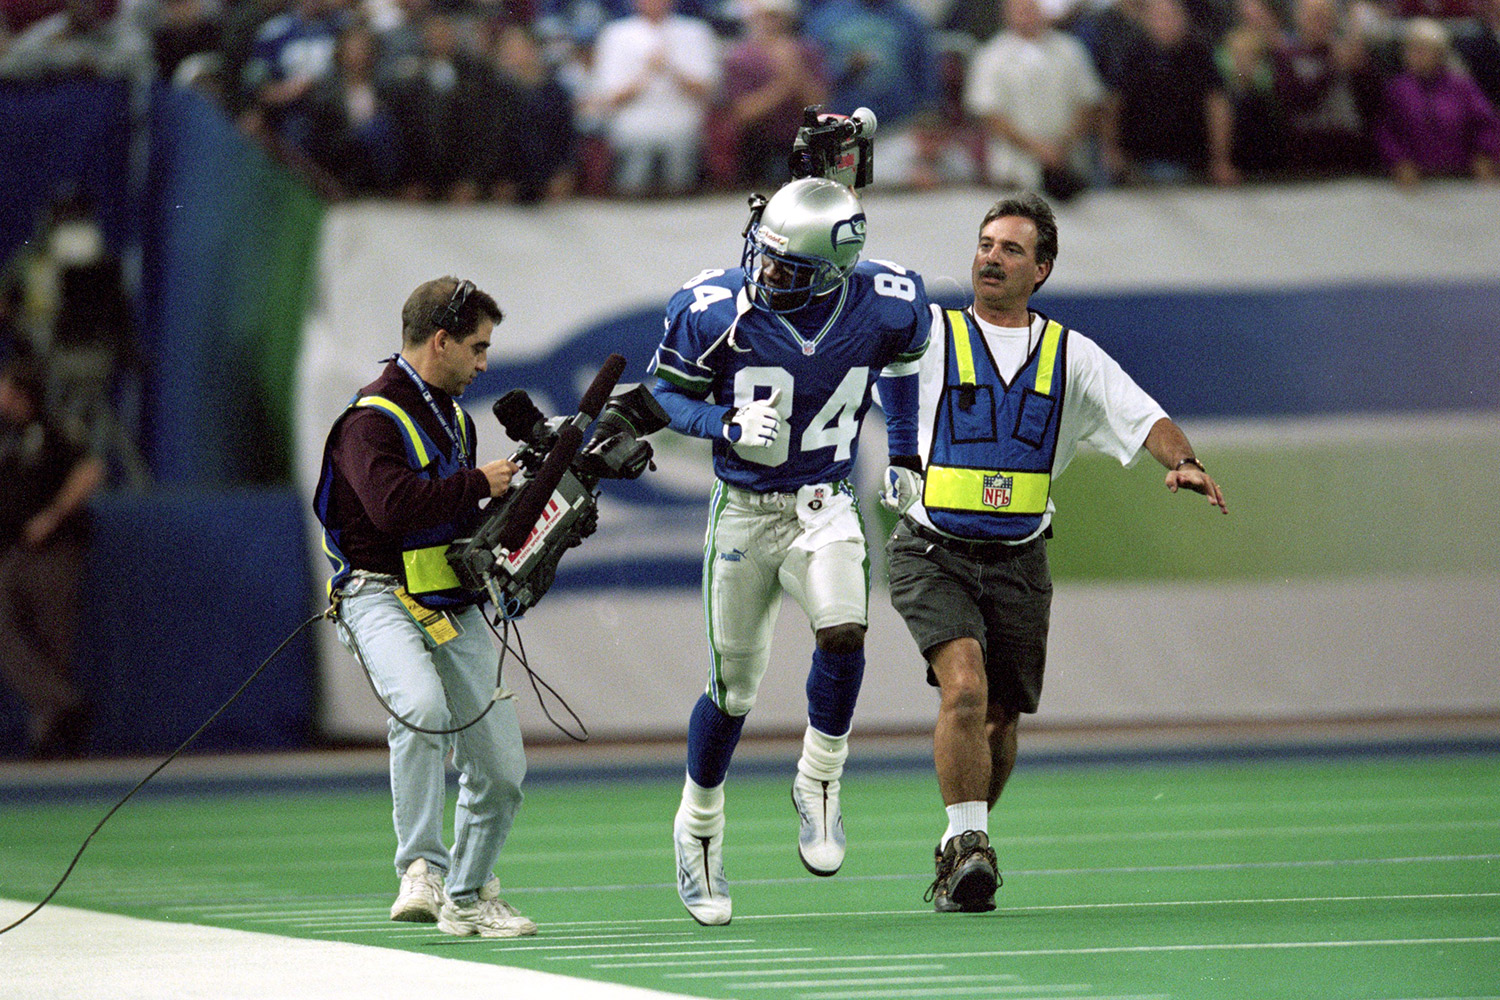 A multi-sport athlete early on in his career, Galloway was drafted with the 8th overall pick in the 1995 NFL Draft. Galloway played for six different NFL franchises throughout his career and at one time owned the AFL's Columbus Destroyers. (*Galloway's time was calculated before the NFL implemented electronic timing to improve accuracy.)